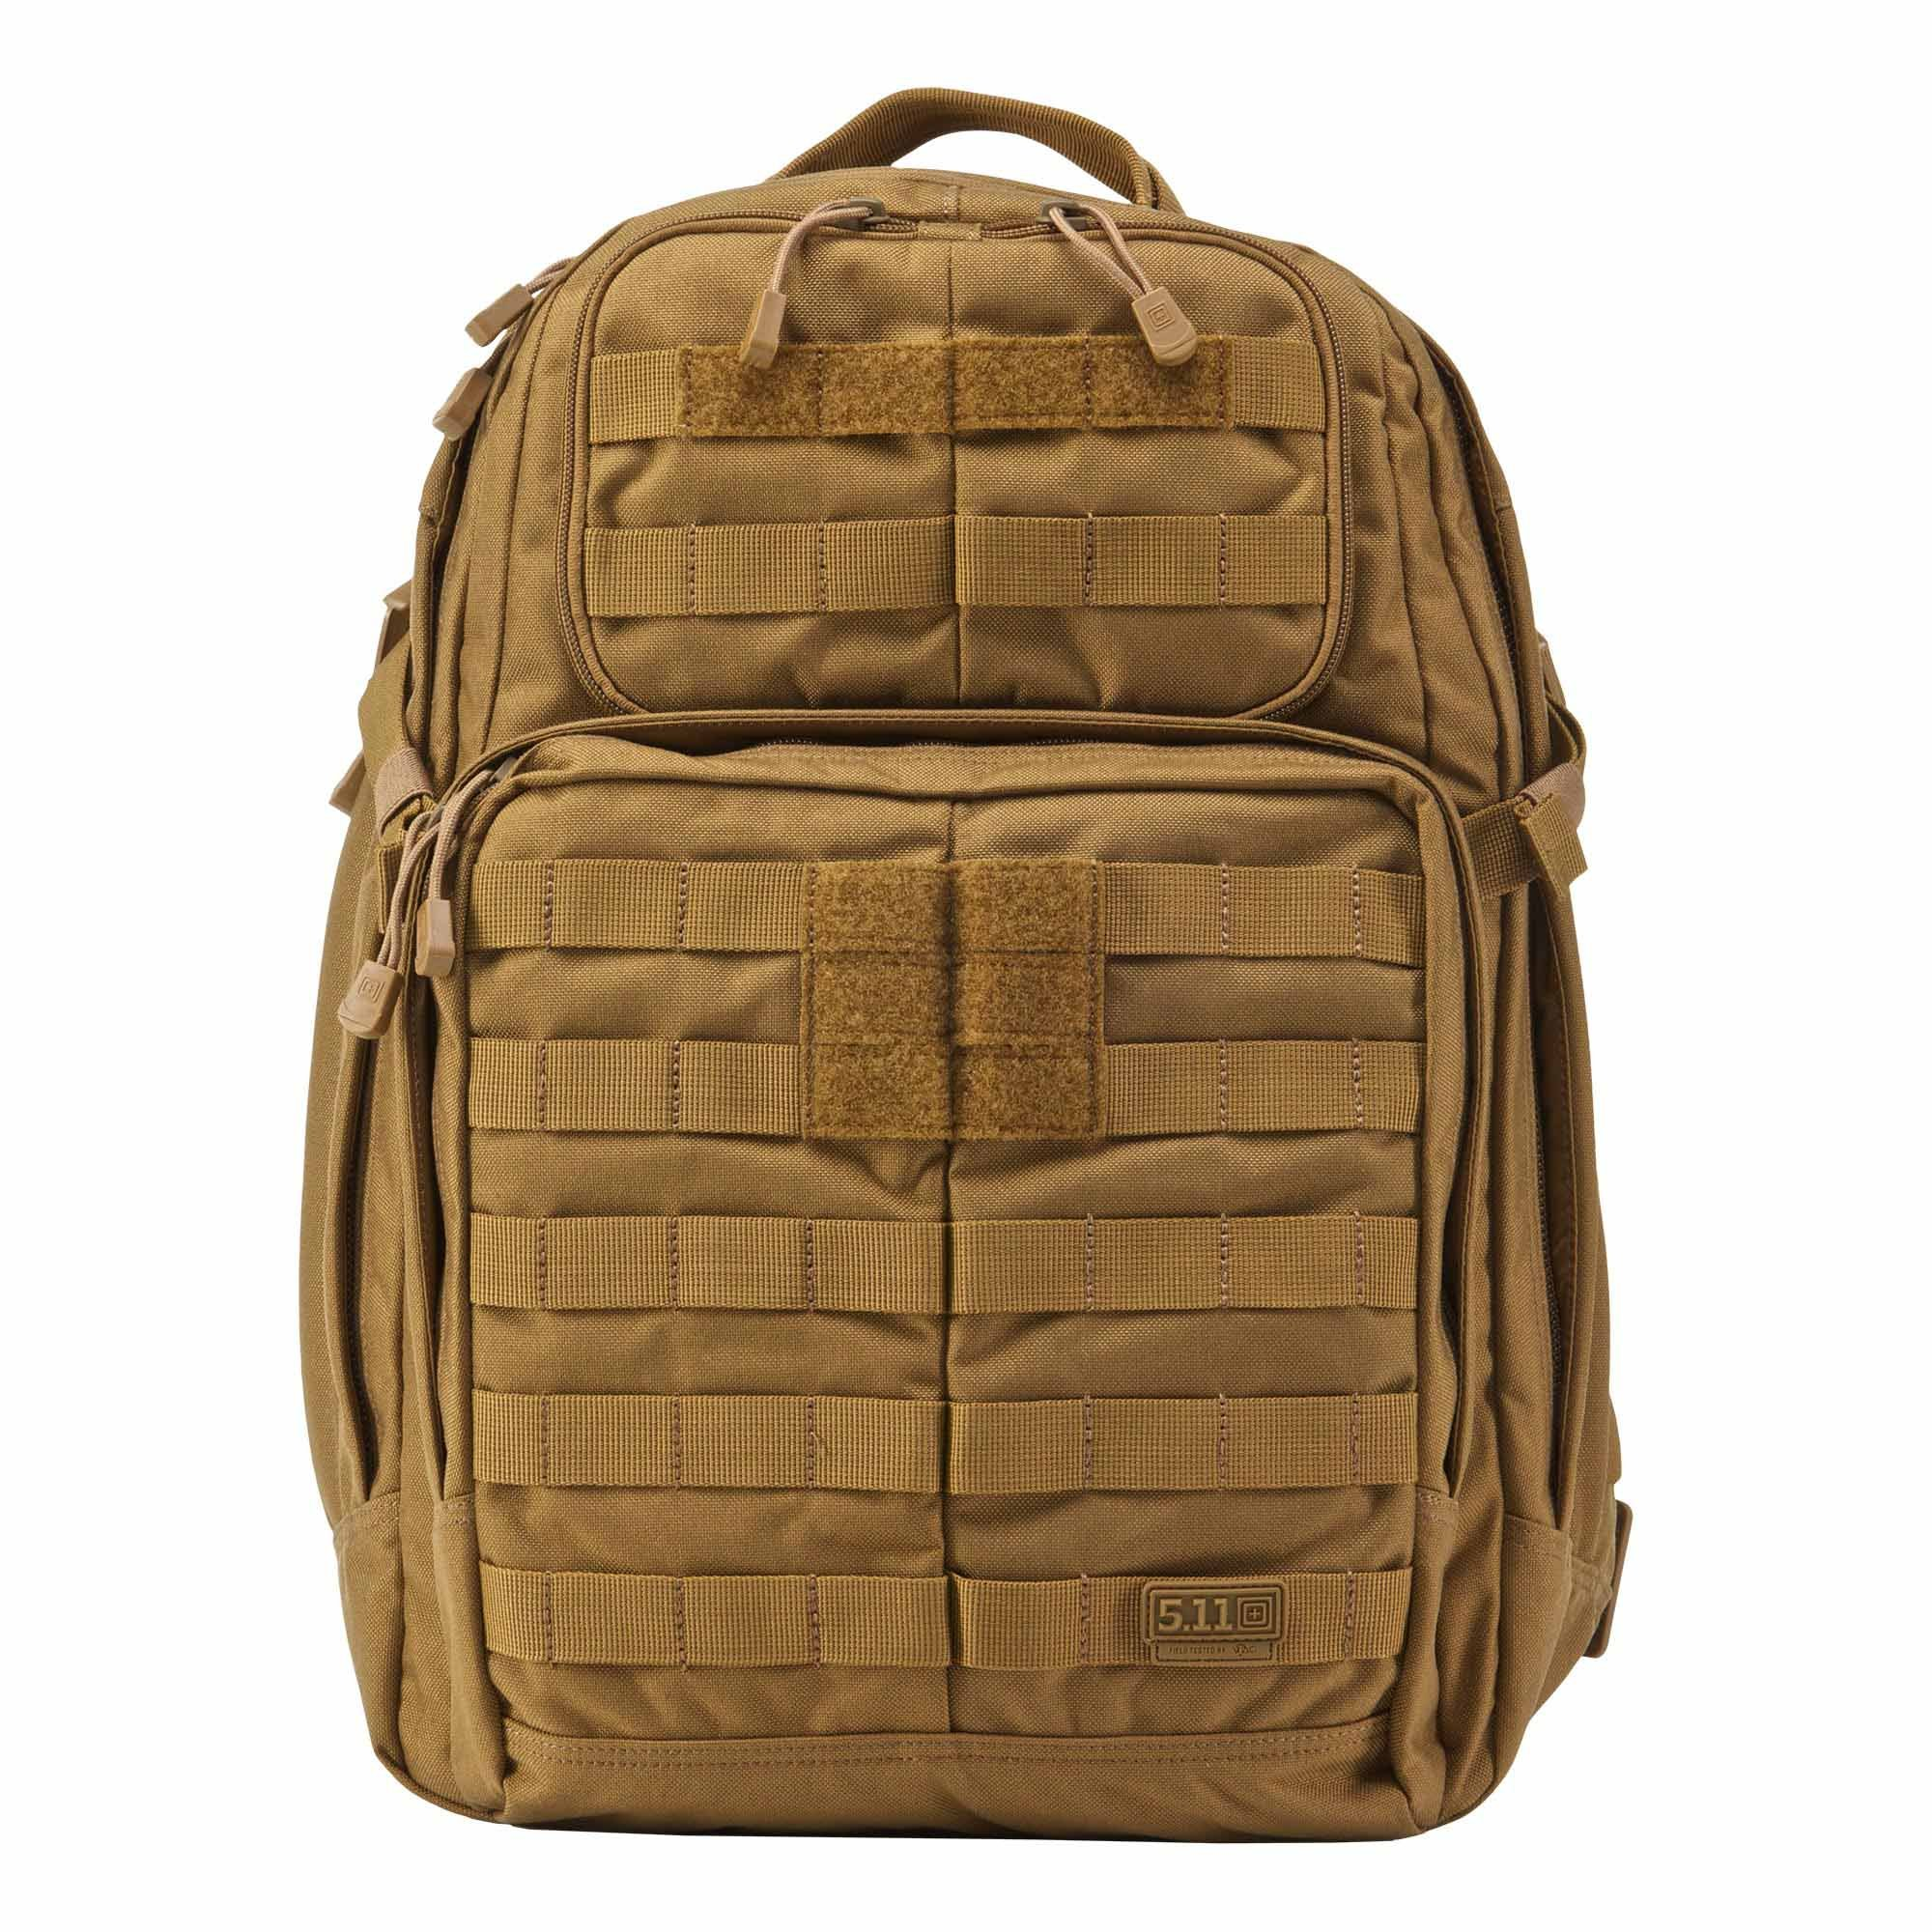 5.11Tactical  RUSH24 Military Backpack, Molle Bag Rucksack Pack, 37 Liter Medium, Style 58601 by 5.11